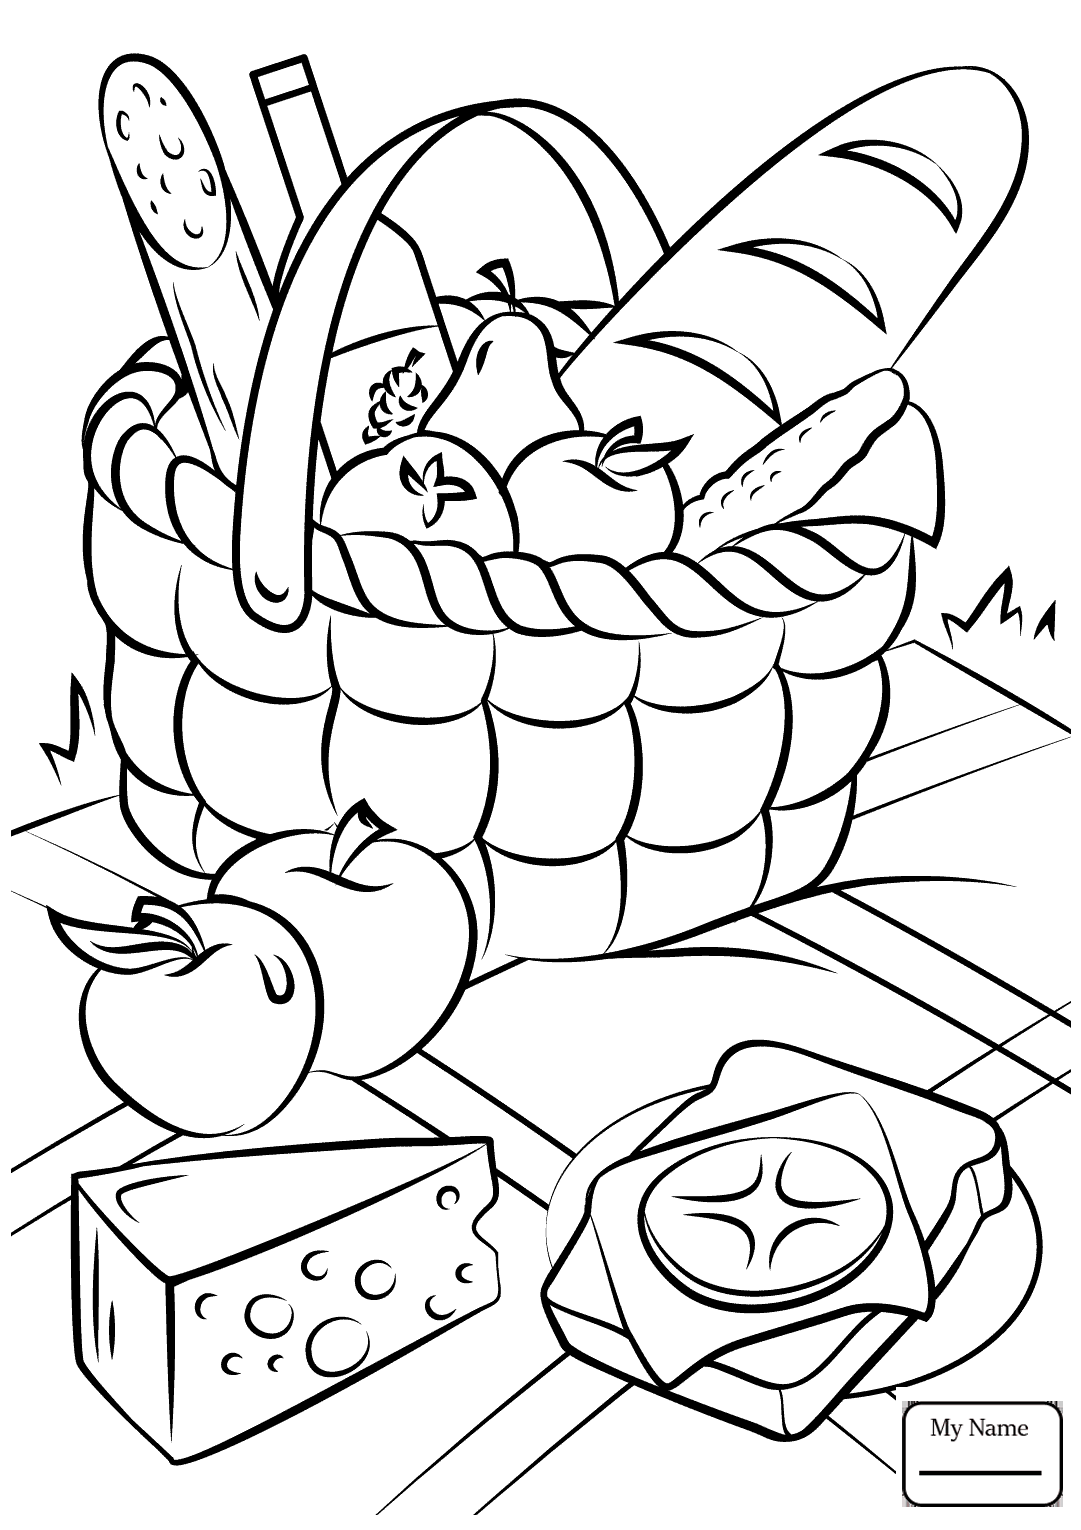 1081x1530 Activities Picnic Picnic Blanket Picnic Coloring Pages For Kids